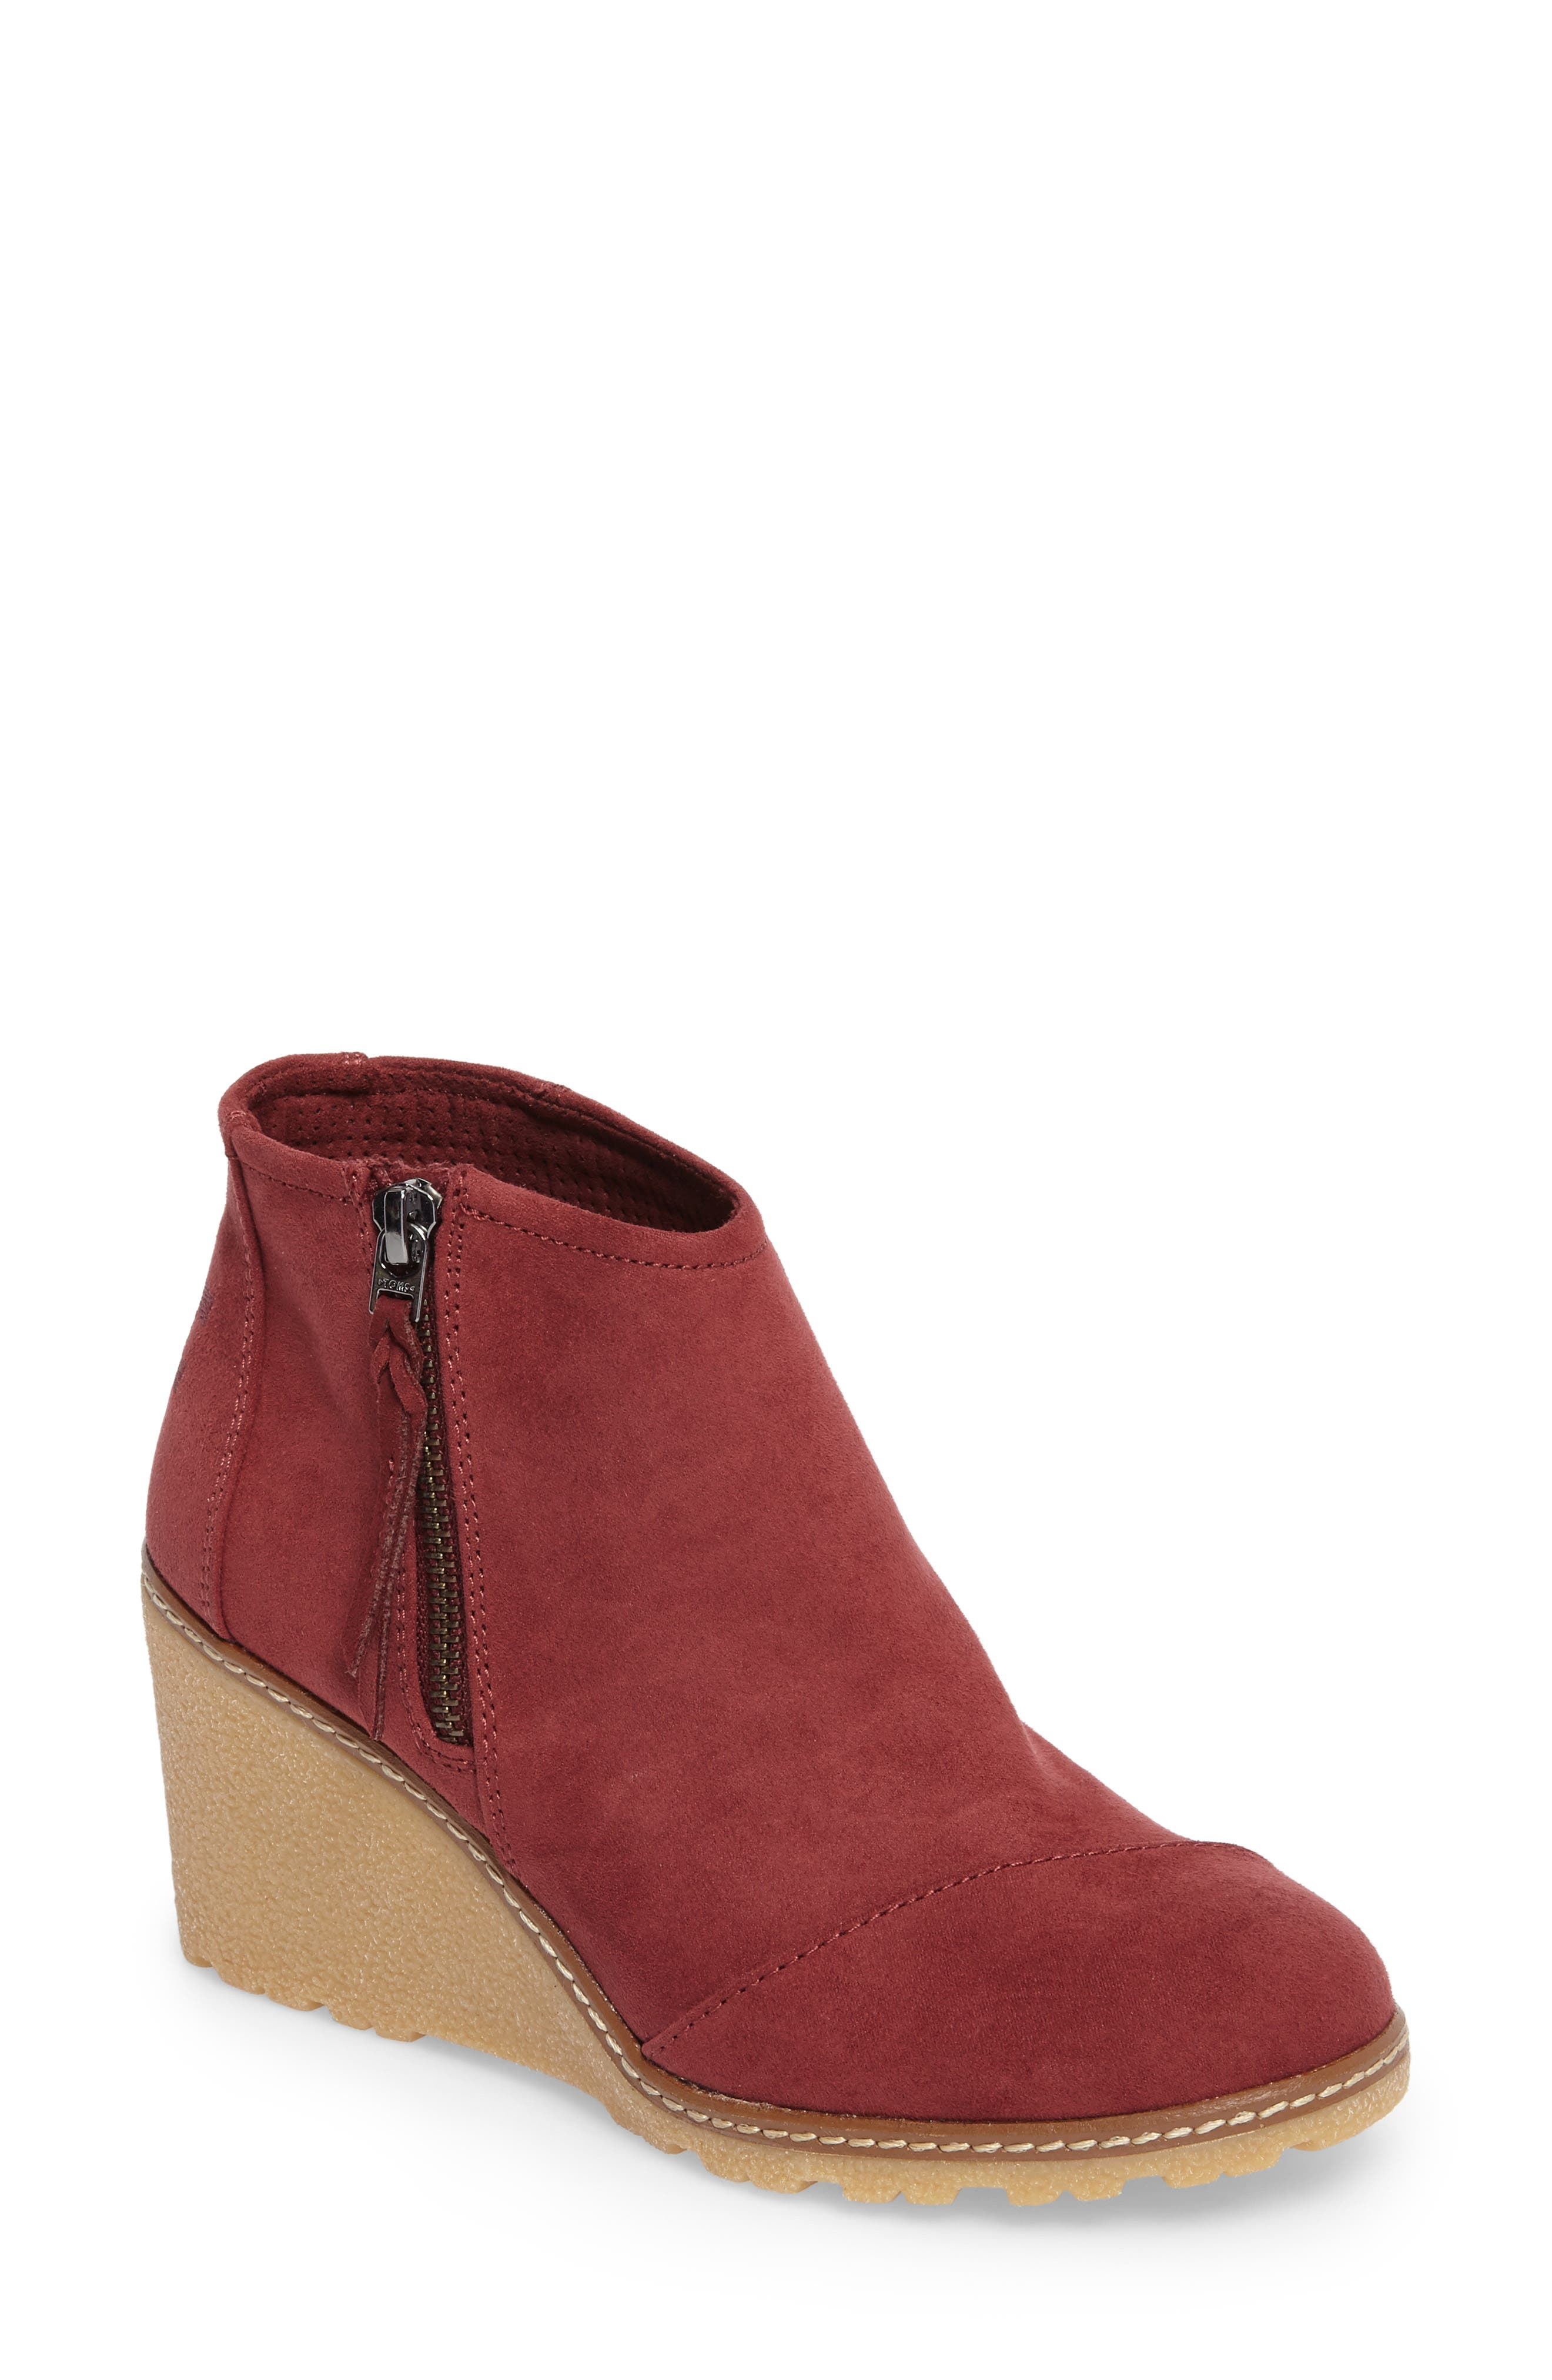 Avery Wedge Bootie,                             Main thumbnail 4, color,